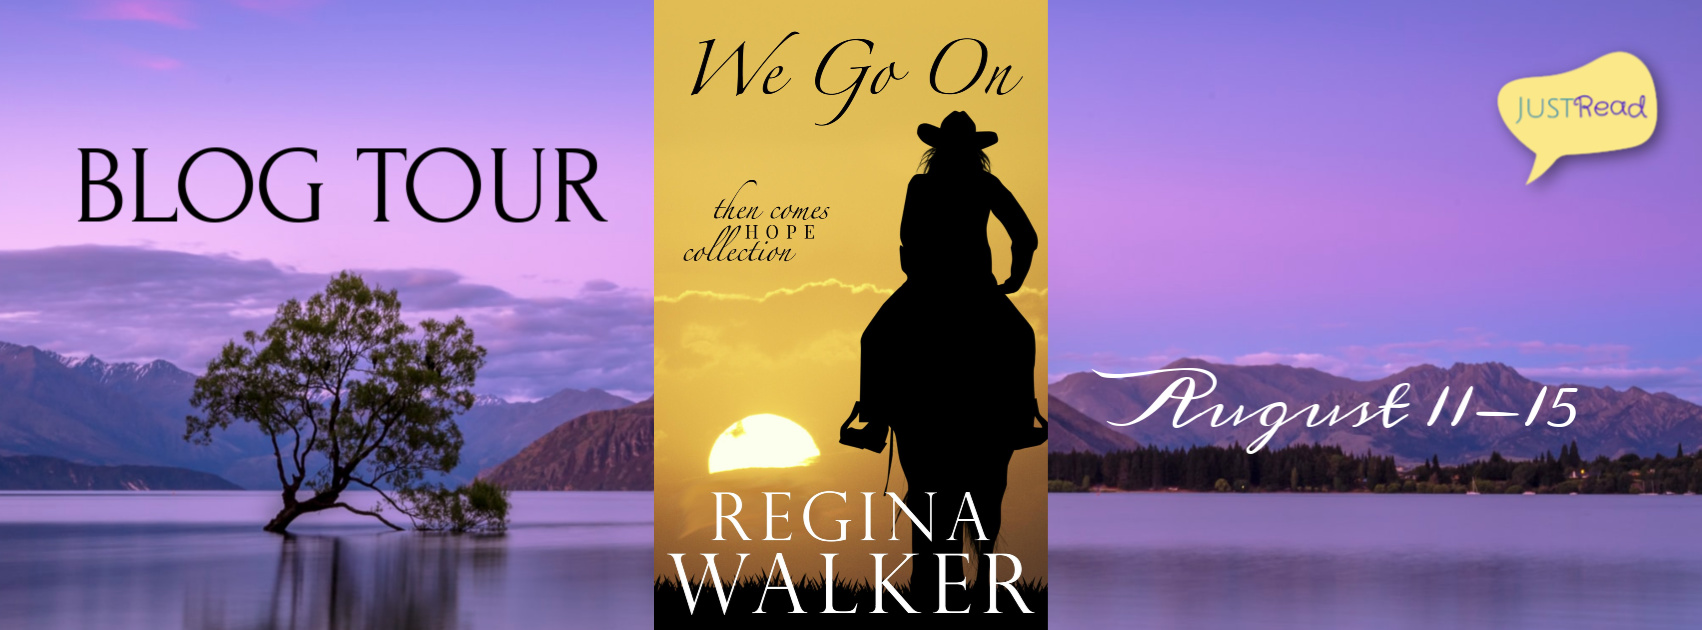 Welcome to the We Go On Blog Tour & Giveaway!